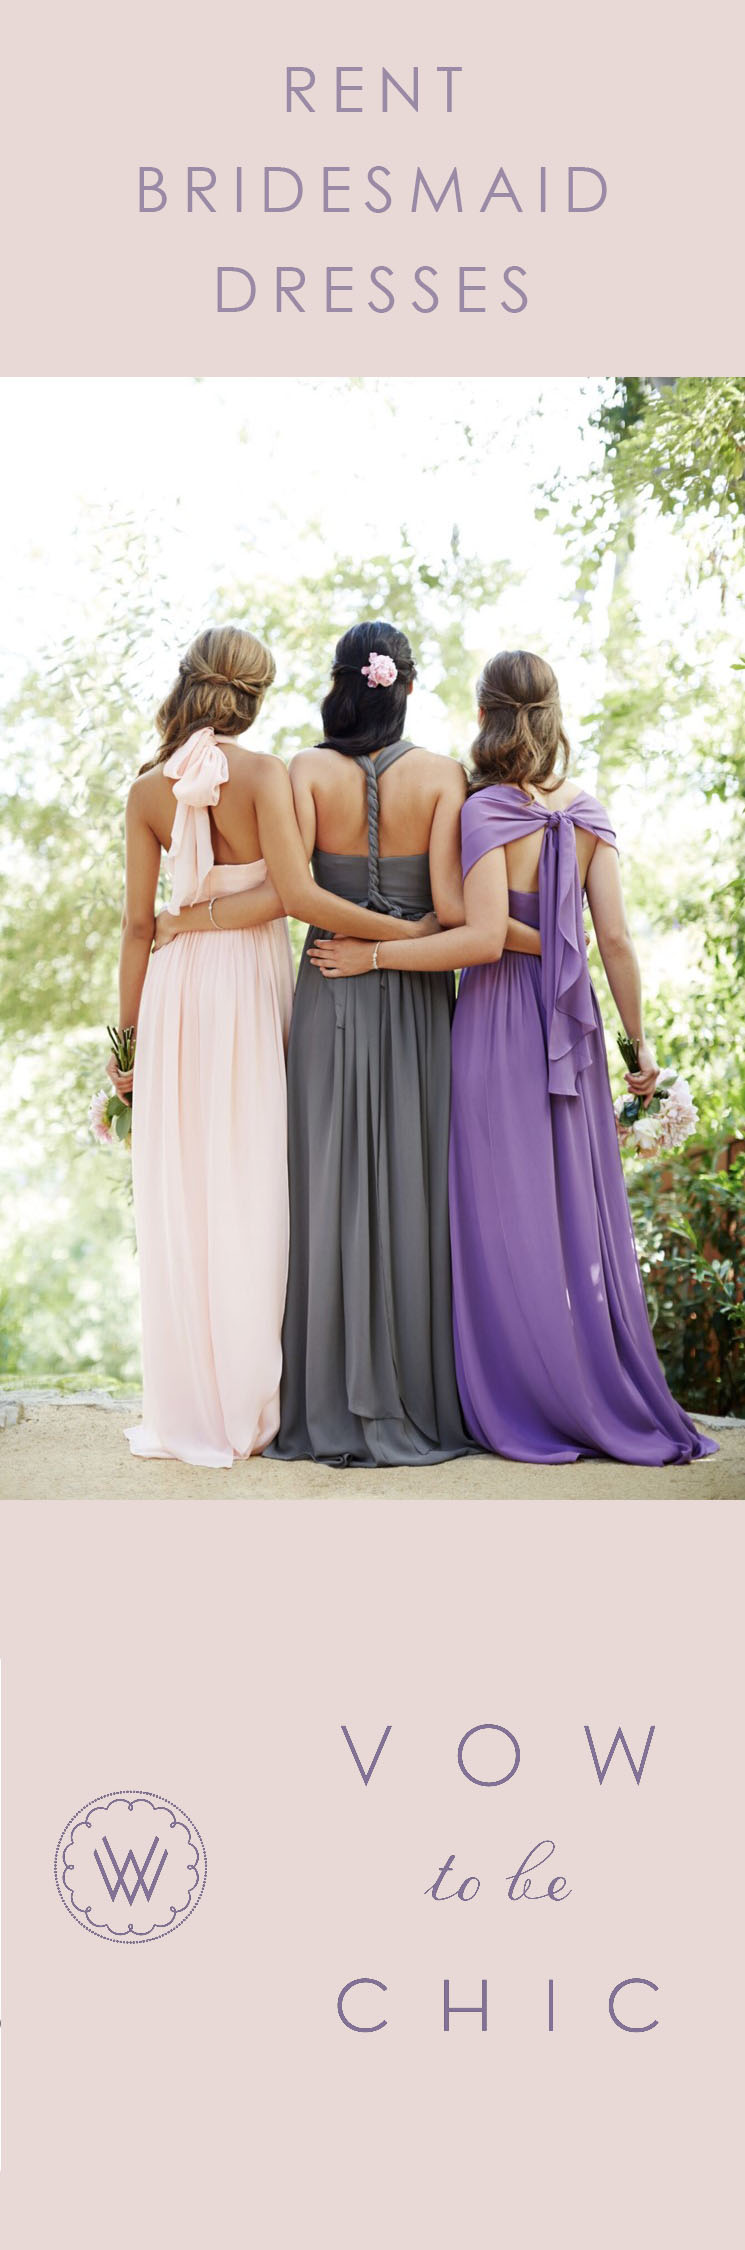 ads-vow-to-be-chic-rent-bridesmaid-dresses.jpg